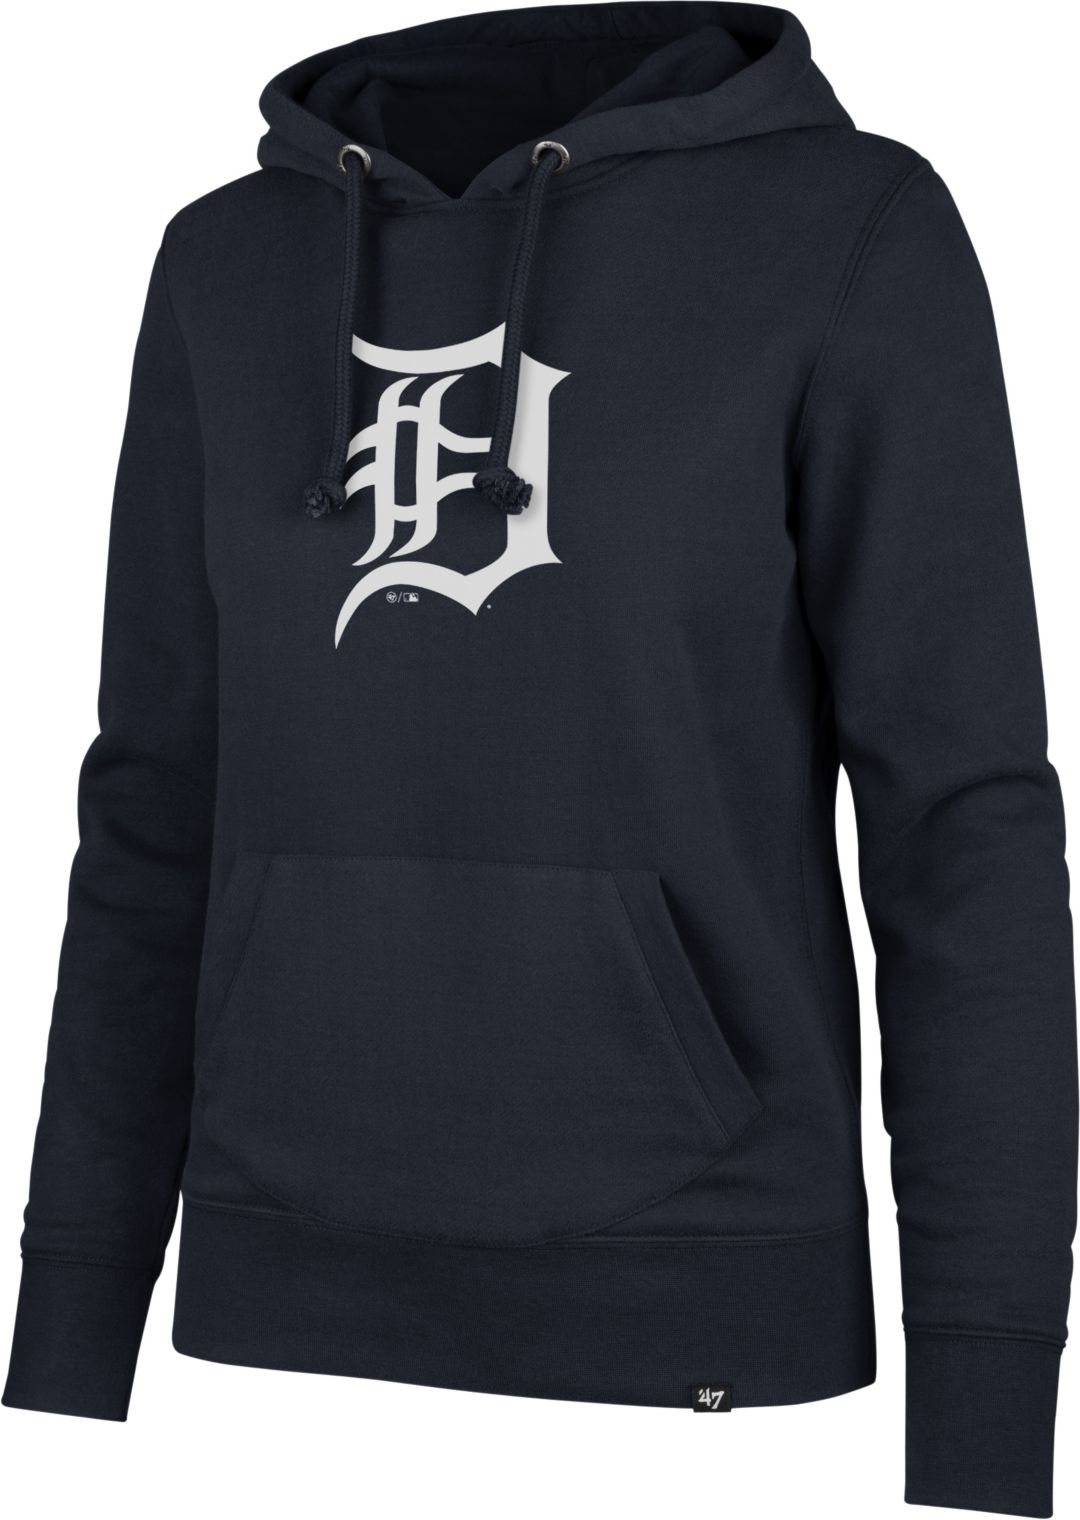 on sale 8564b 1d442 '47 Women's Detroit Tigers Headline Pullover Hoodie